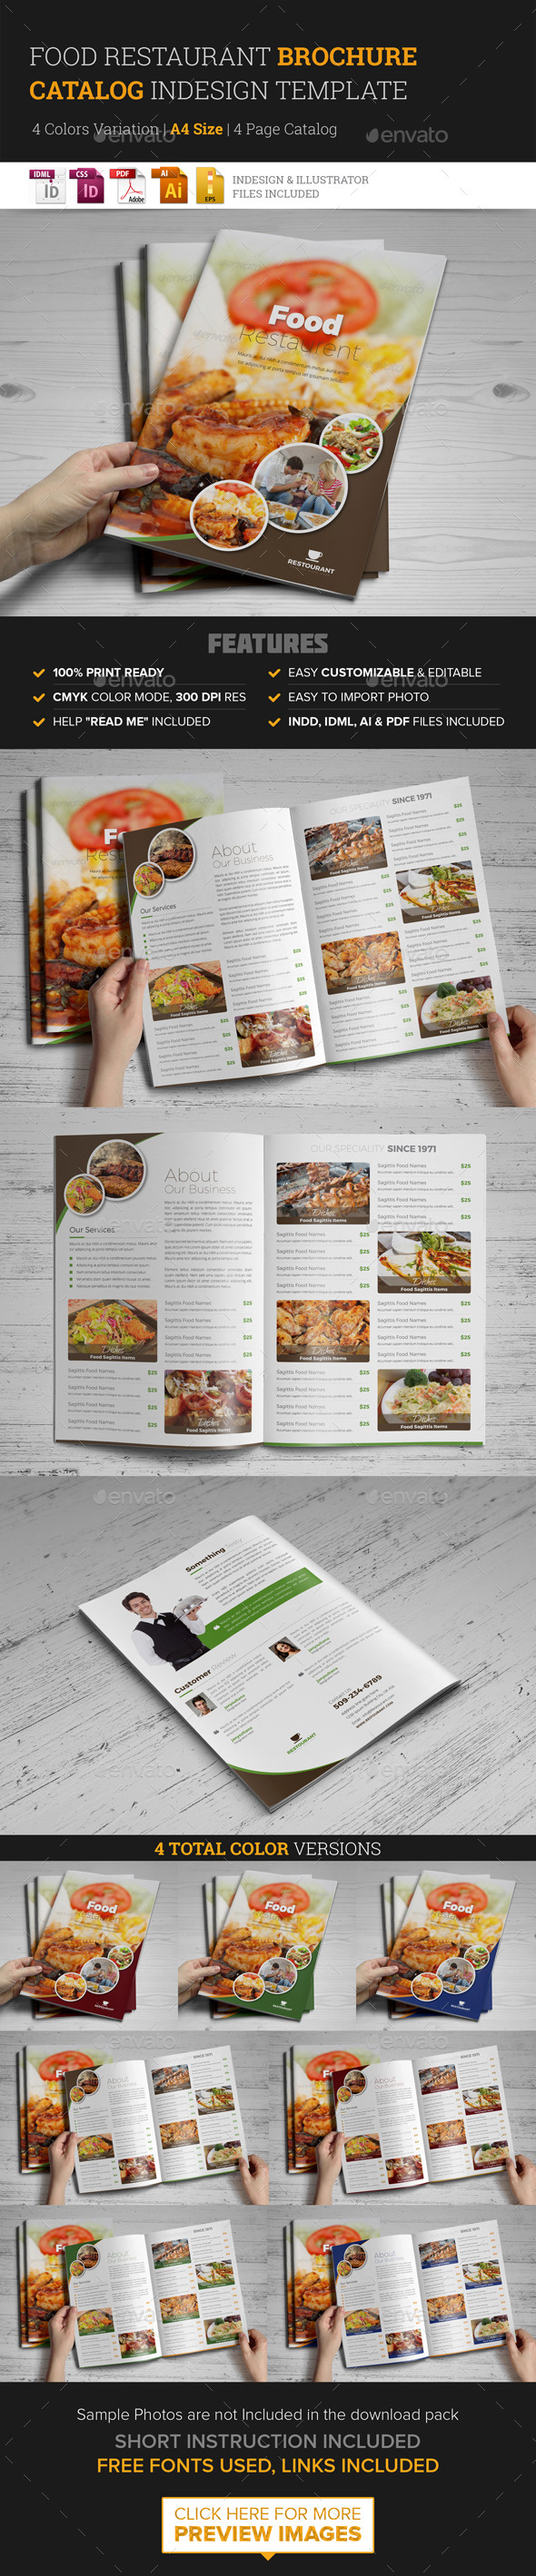 Food Restaurant Bifold Brochure InDesign Template - Corporate Brochures